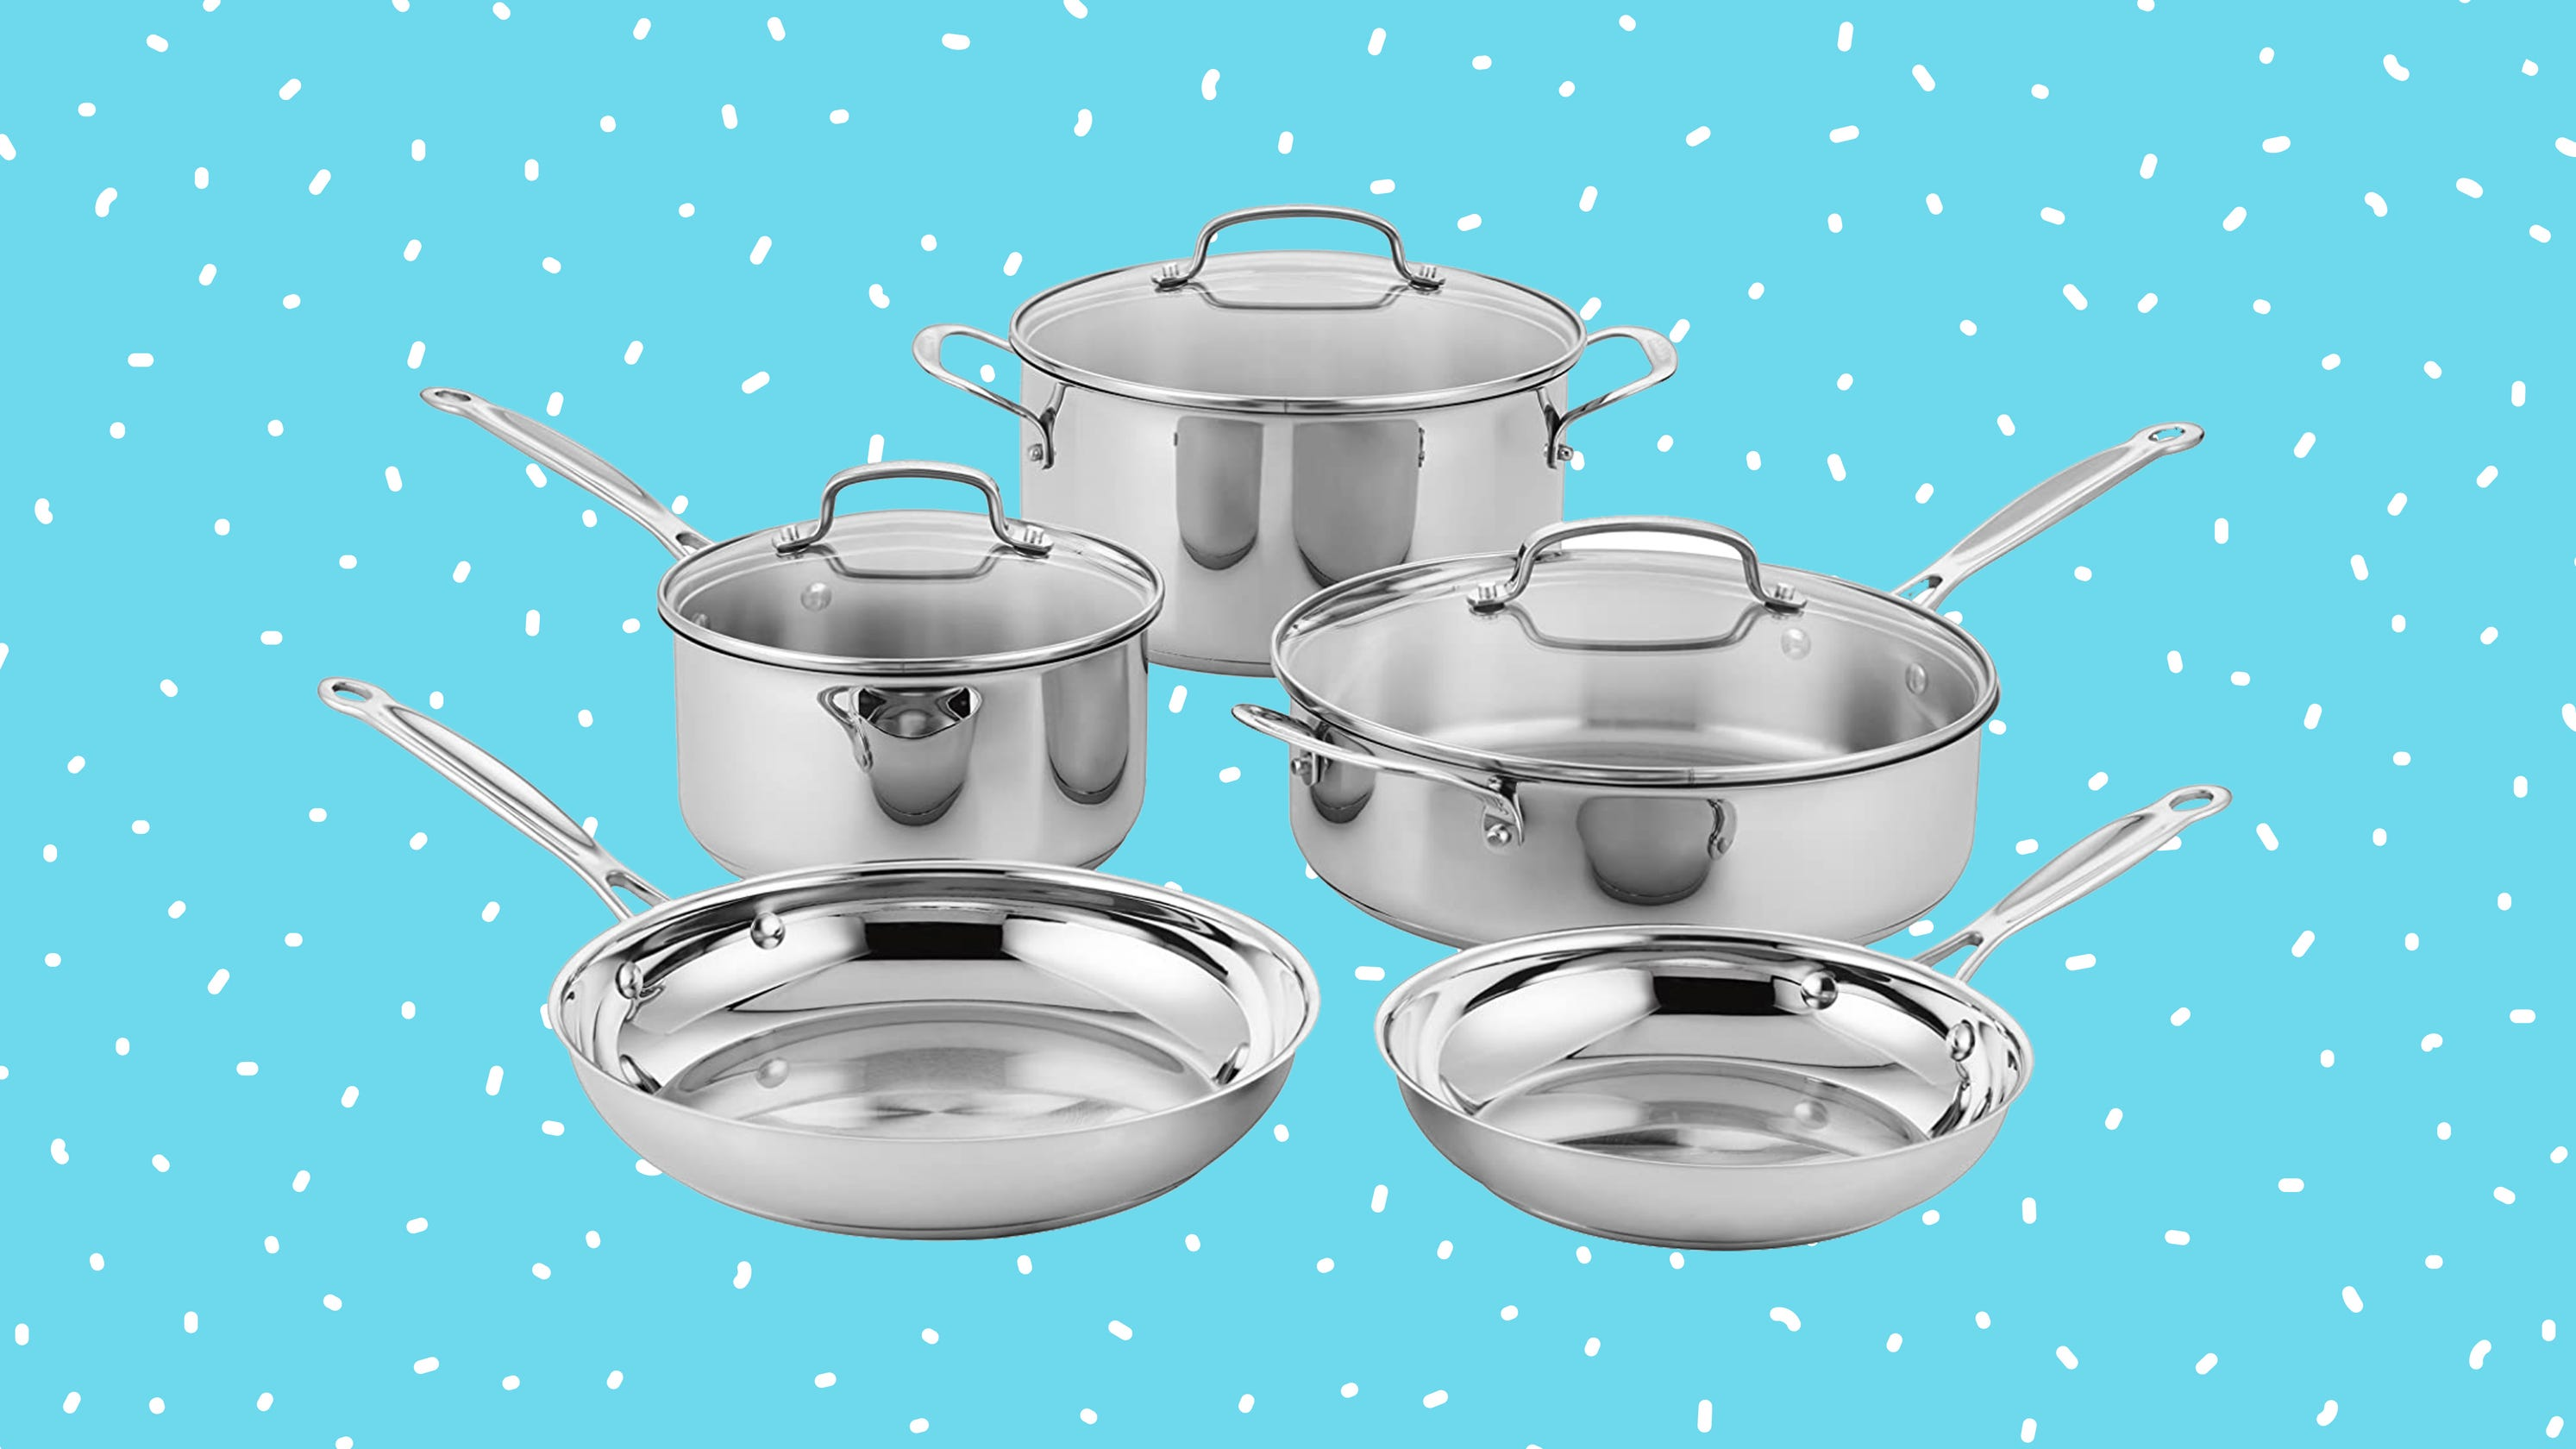 Get this popular stainless steel set for less than $100